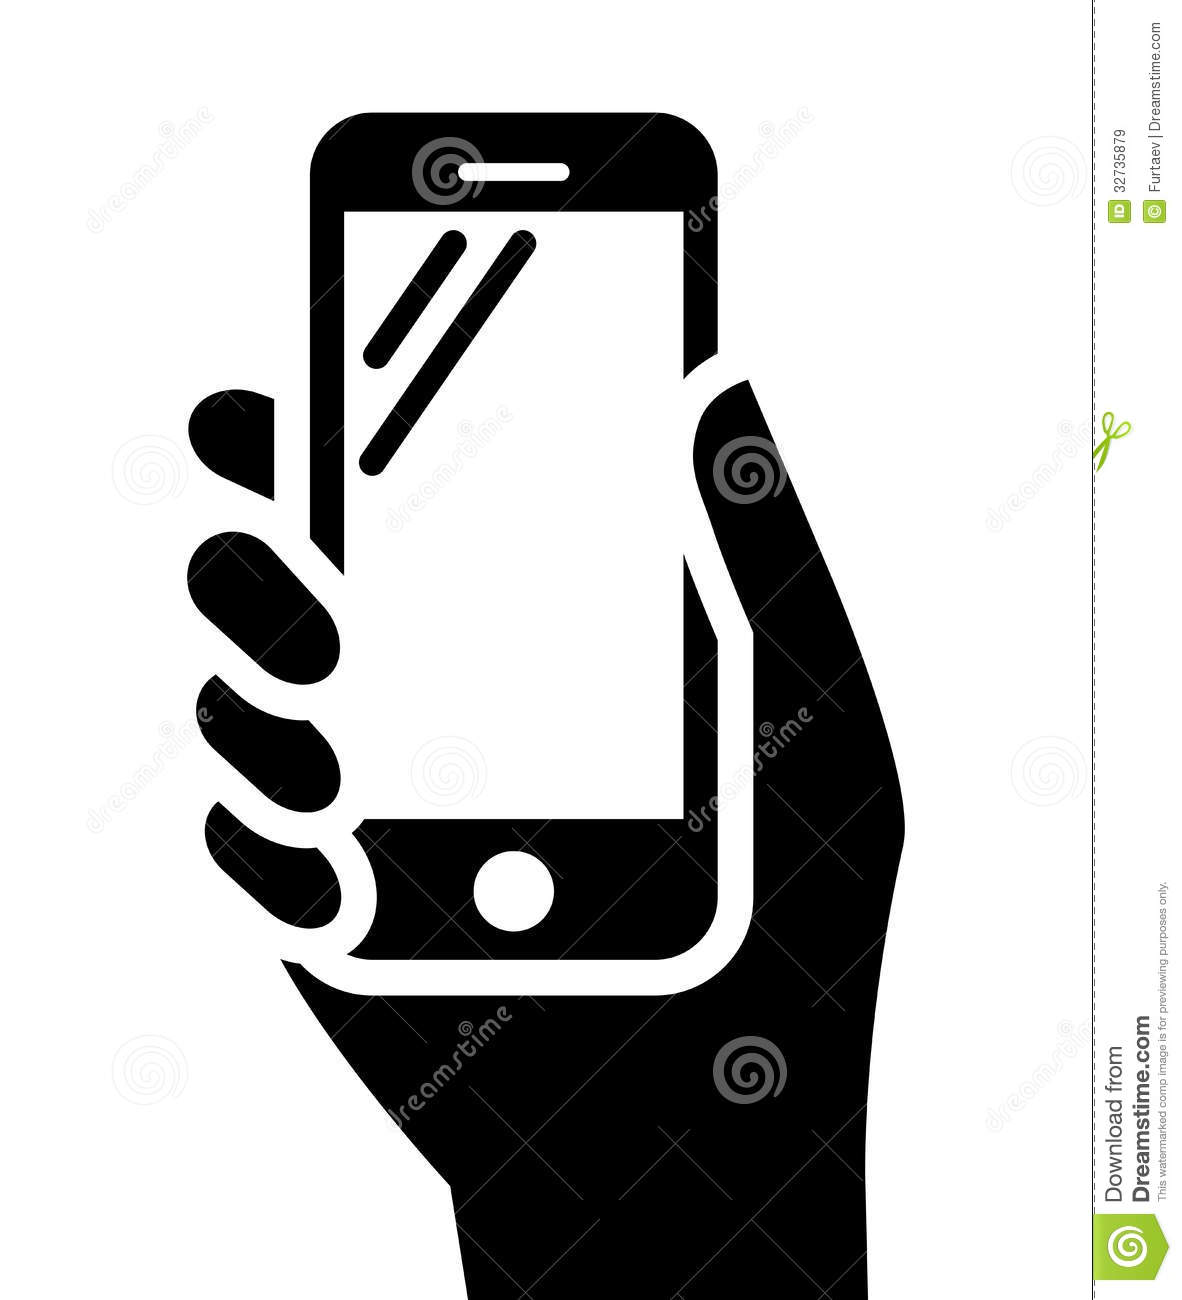 Set Vector Isolated Black Icon Fire Stock Vector Royalty Free Phone In Hand Sign Royalty Free Stock Images - Image: 32735879